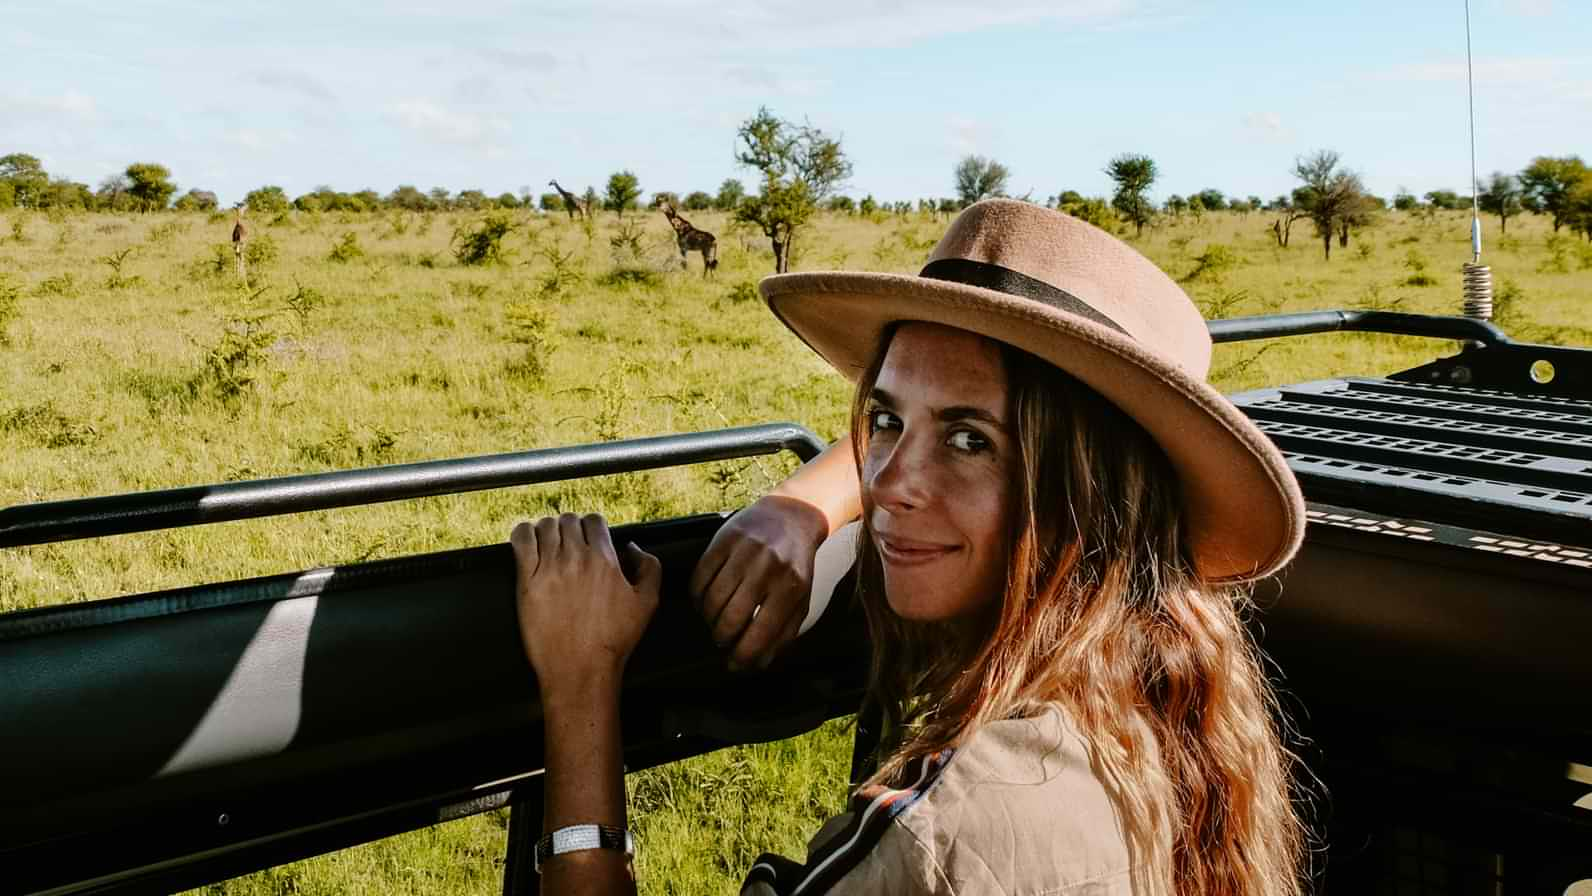 Watching wildlife, a small herd of giraffes, from the jeep in the Serengeti National Park, Tanzania